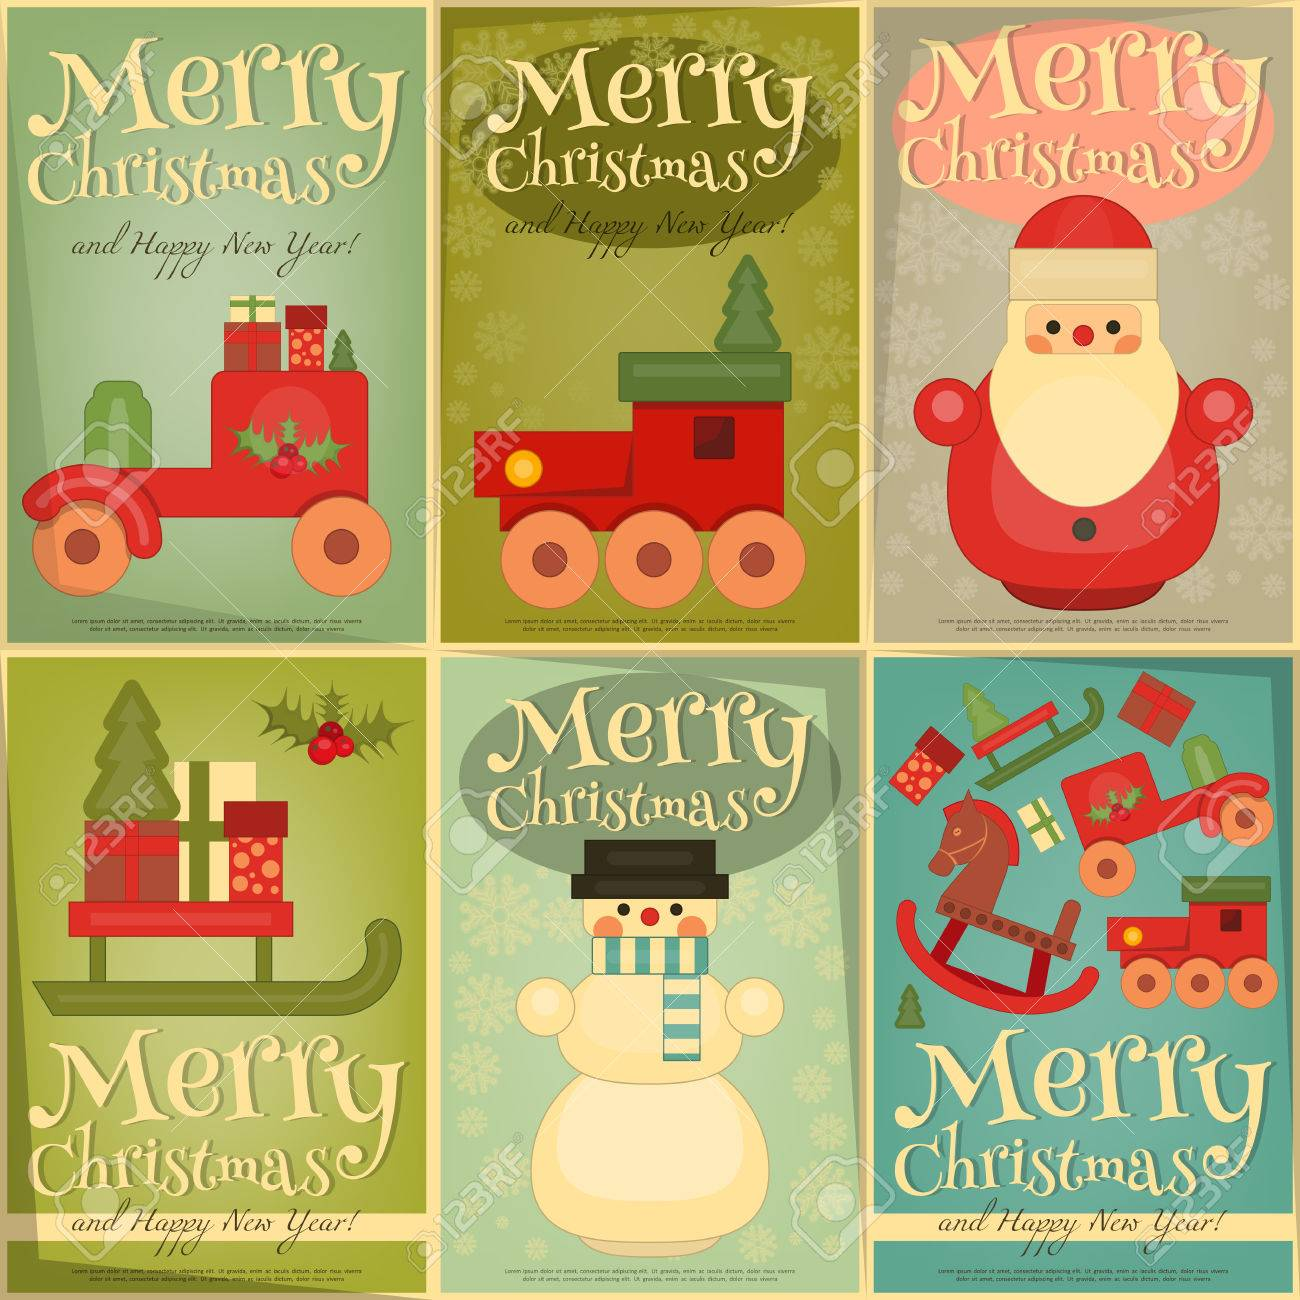 Merry Christmas and Happy New Year Posters Set in Retro Style. Vintage Toys  Collection -